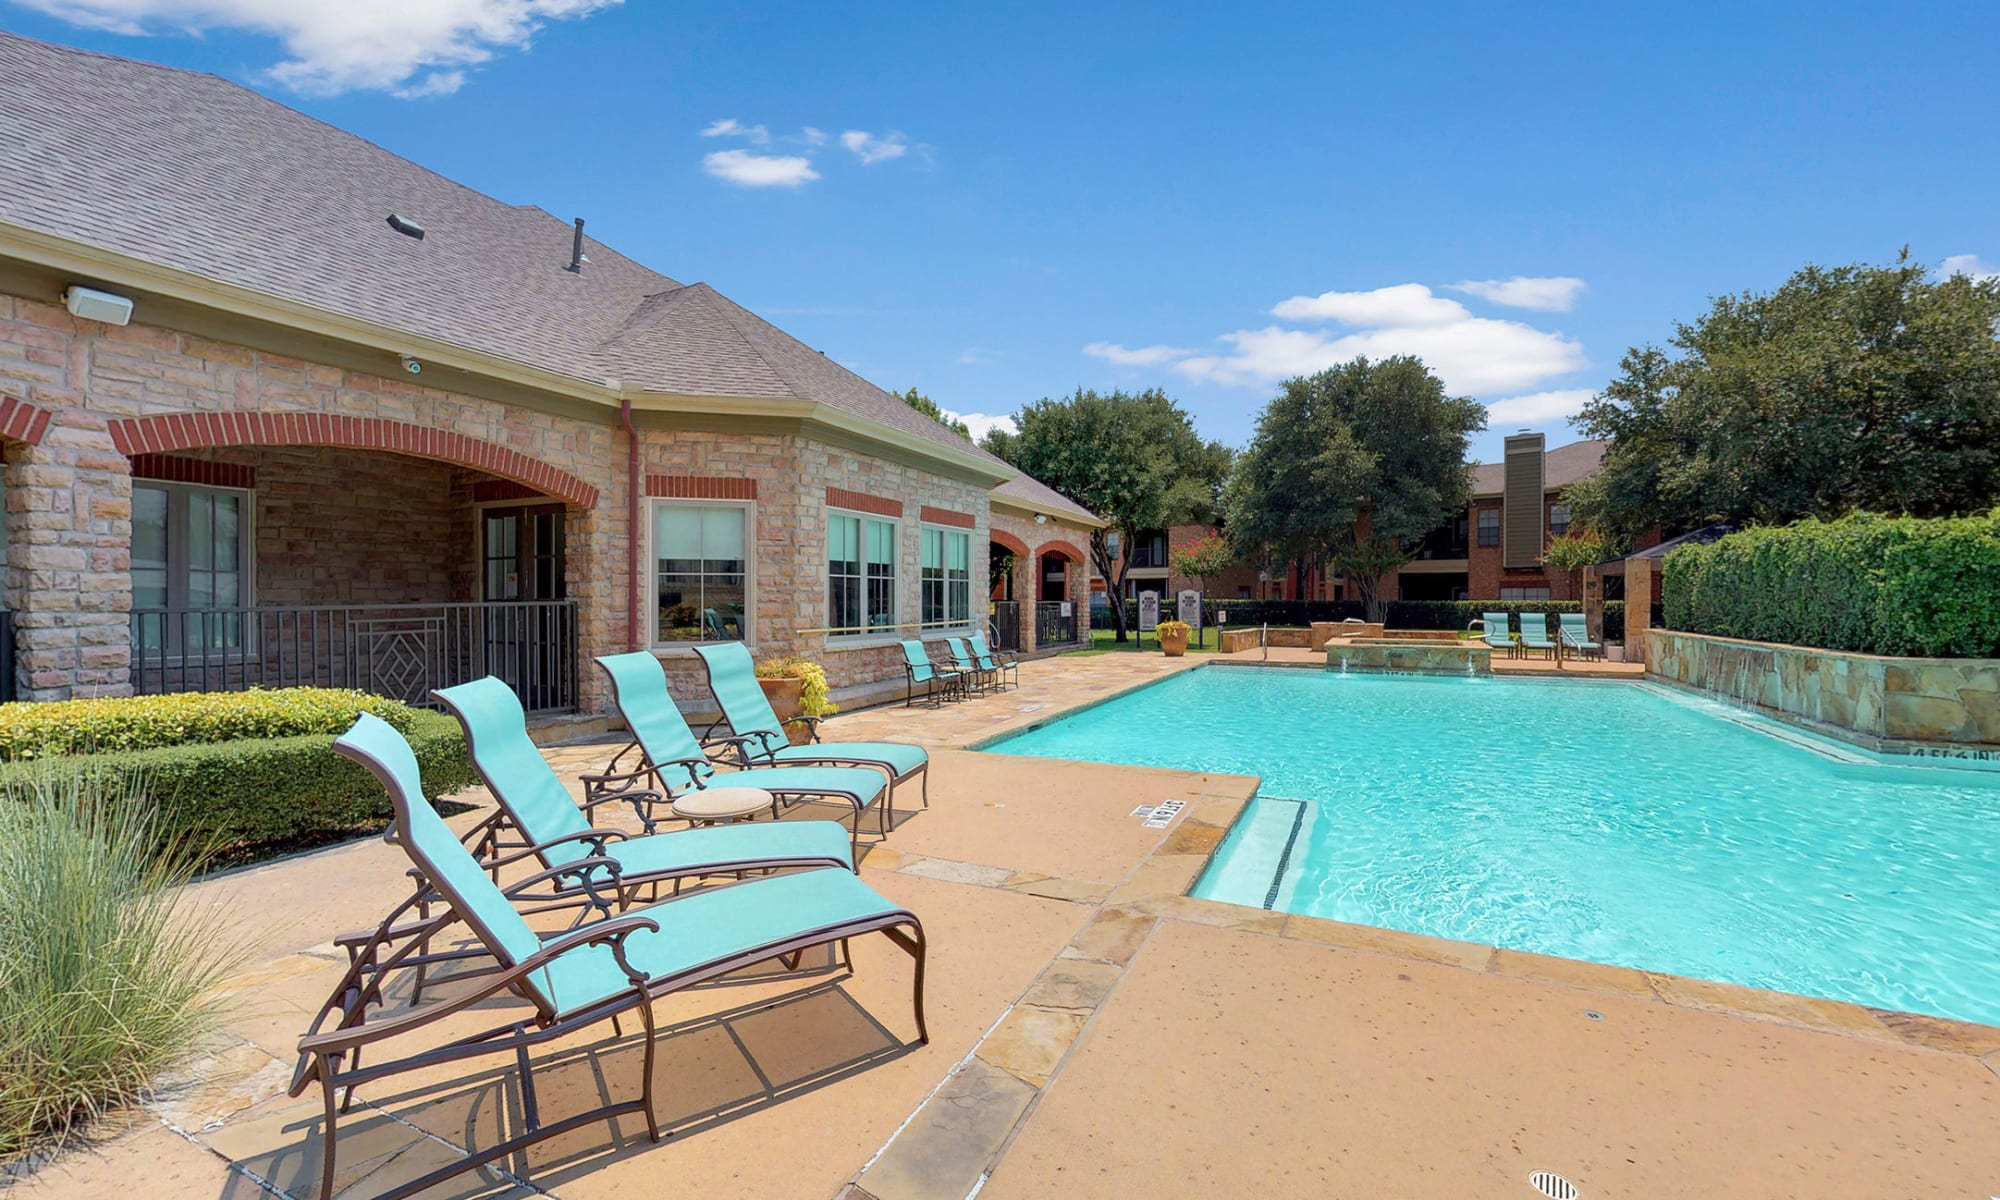 Apartments at Oaks Riverchase in Coppell, Texas